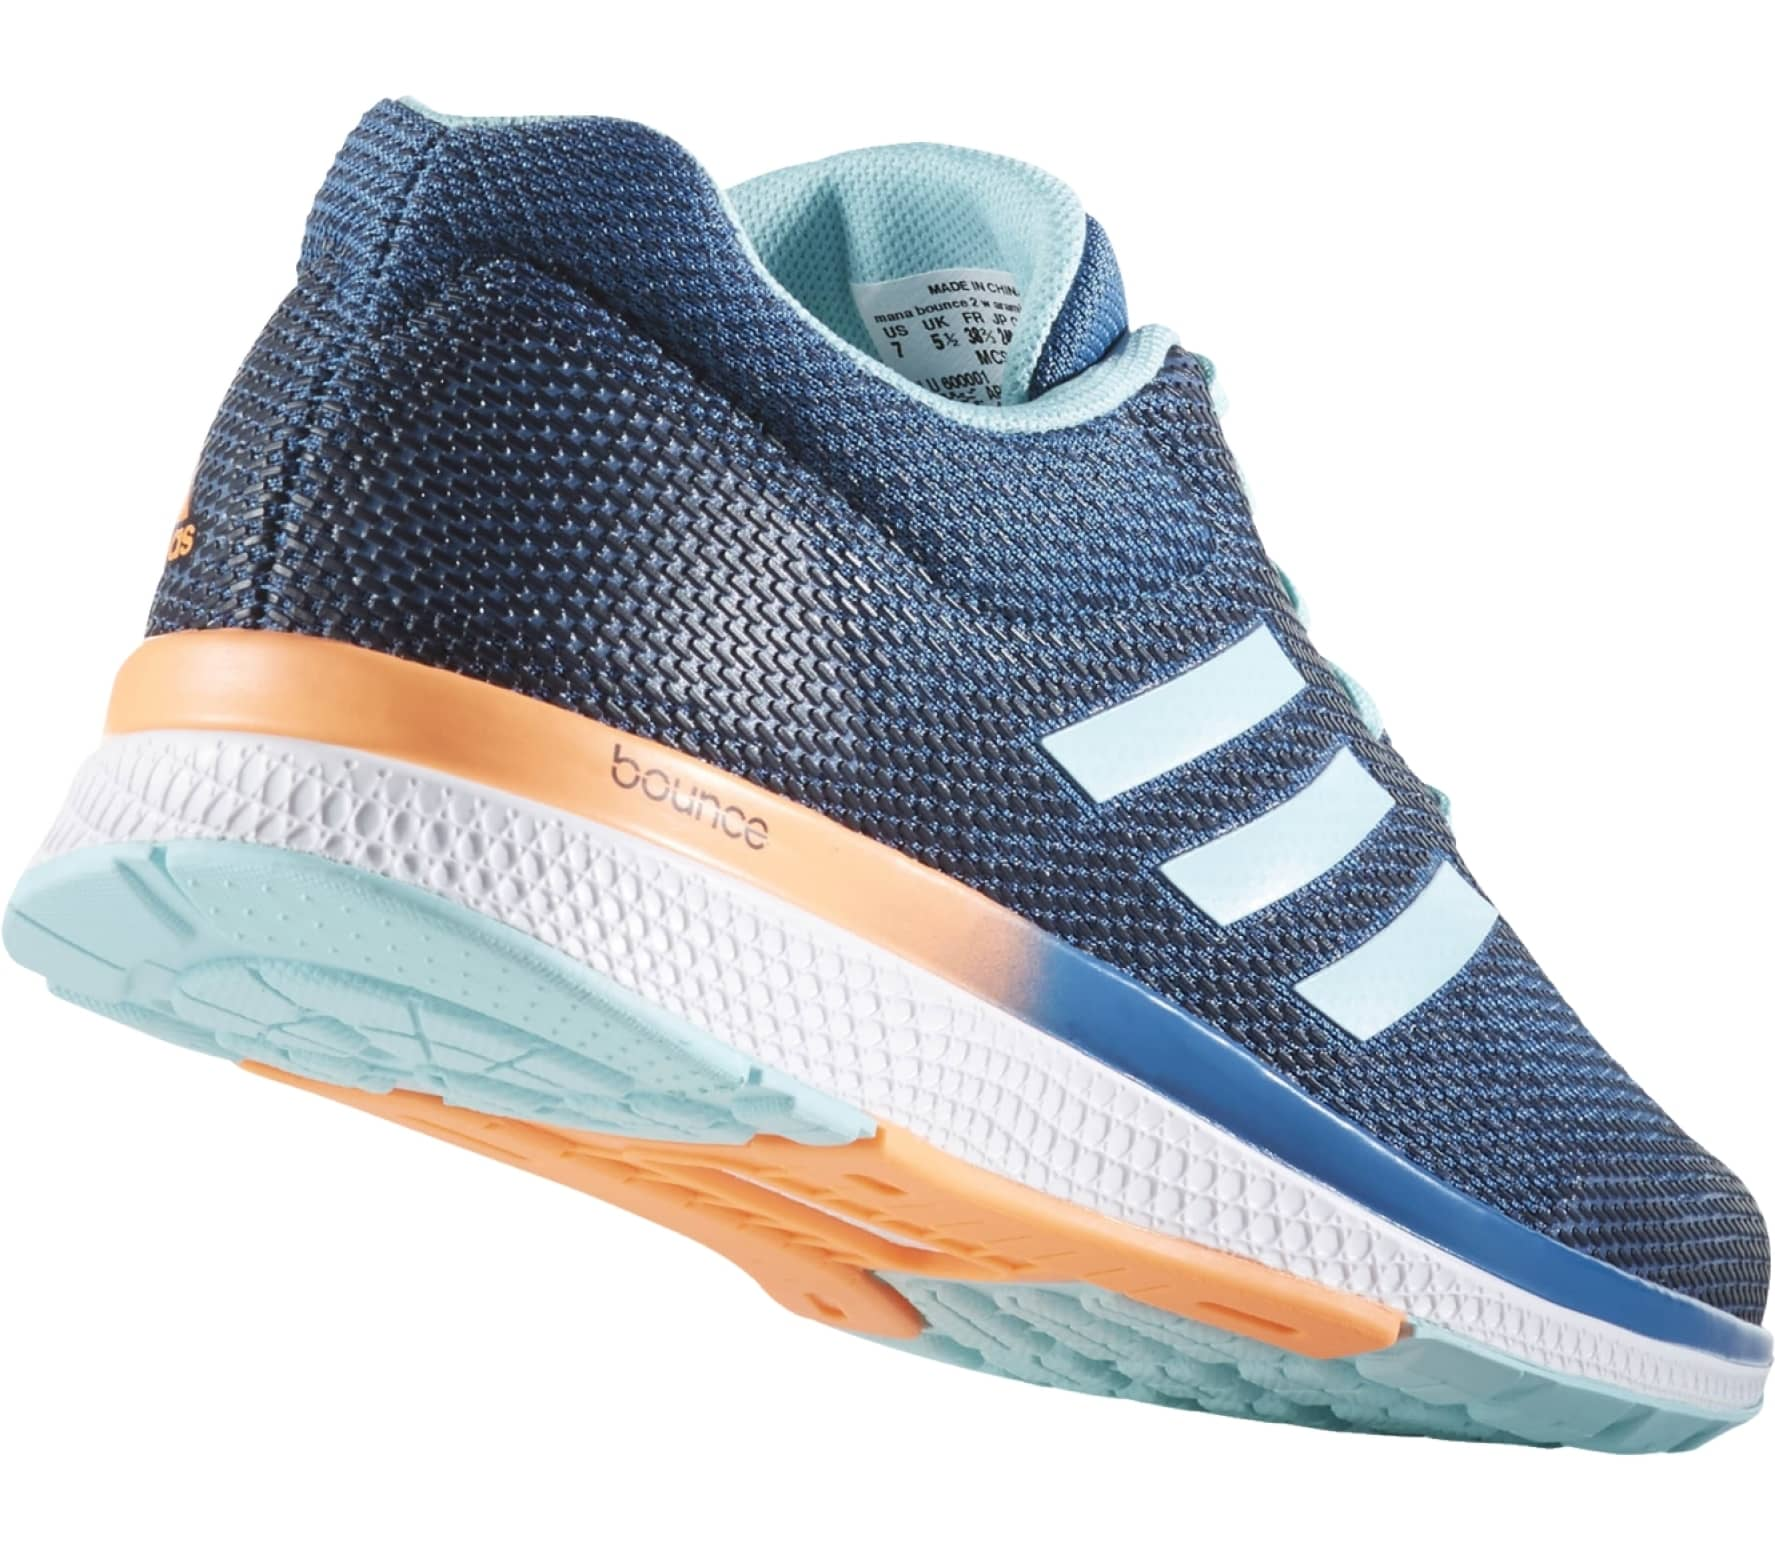 45fec89121edd Adidas - Mana Bounce 2 Aramis women s running shoes (blue orange ...